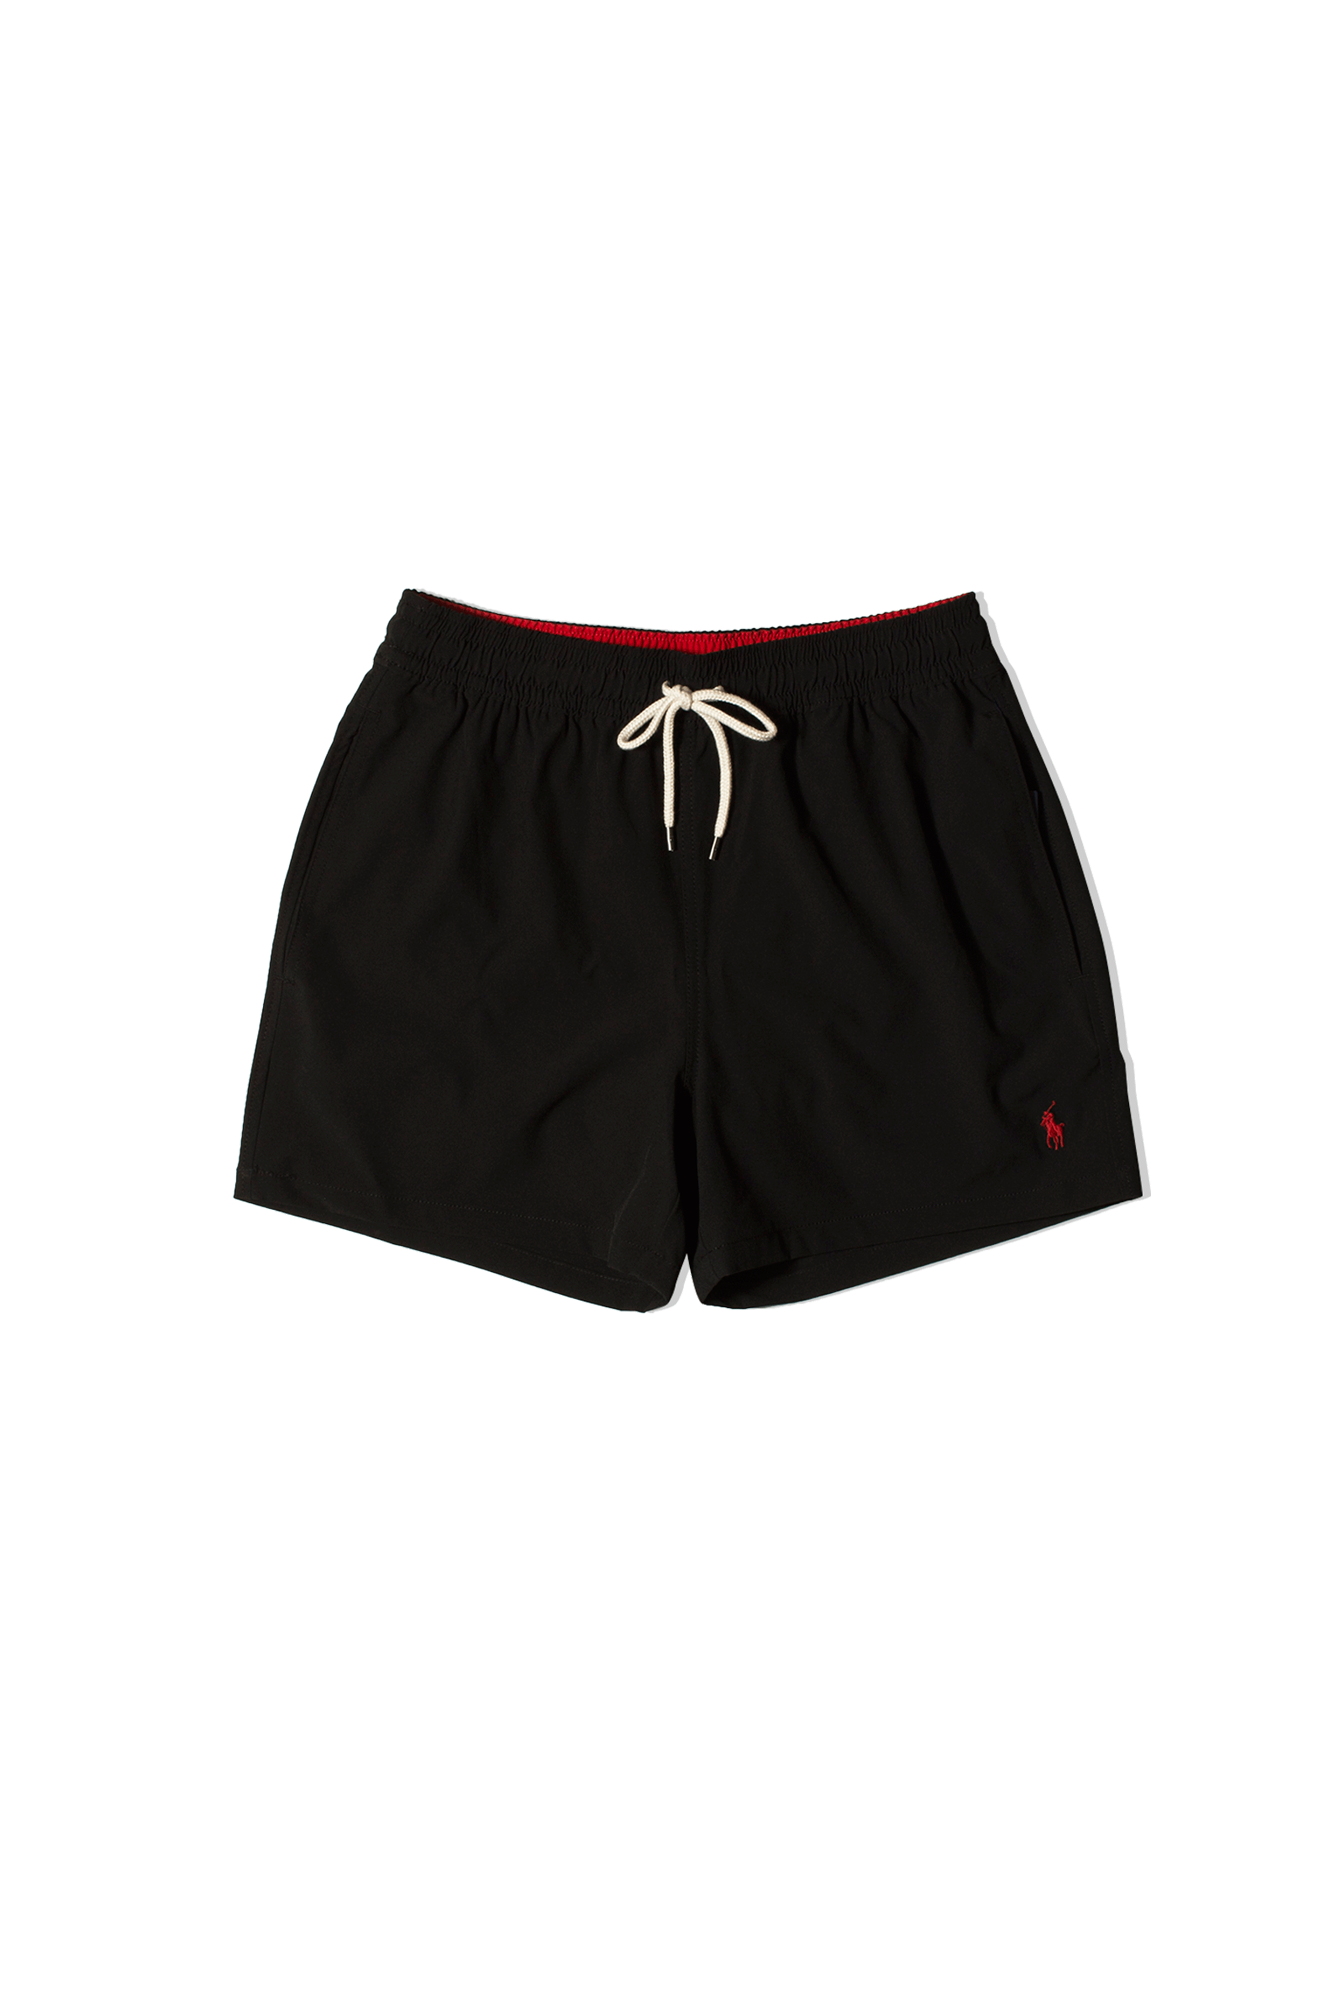 Traveler mid Trunk Short Black